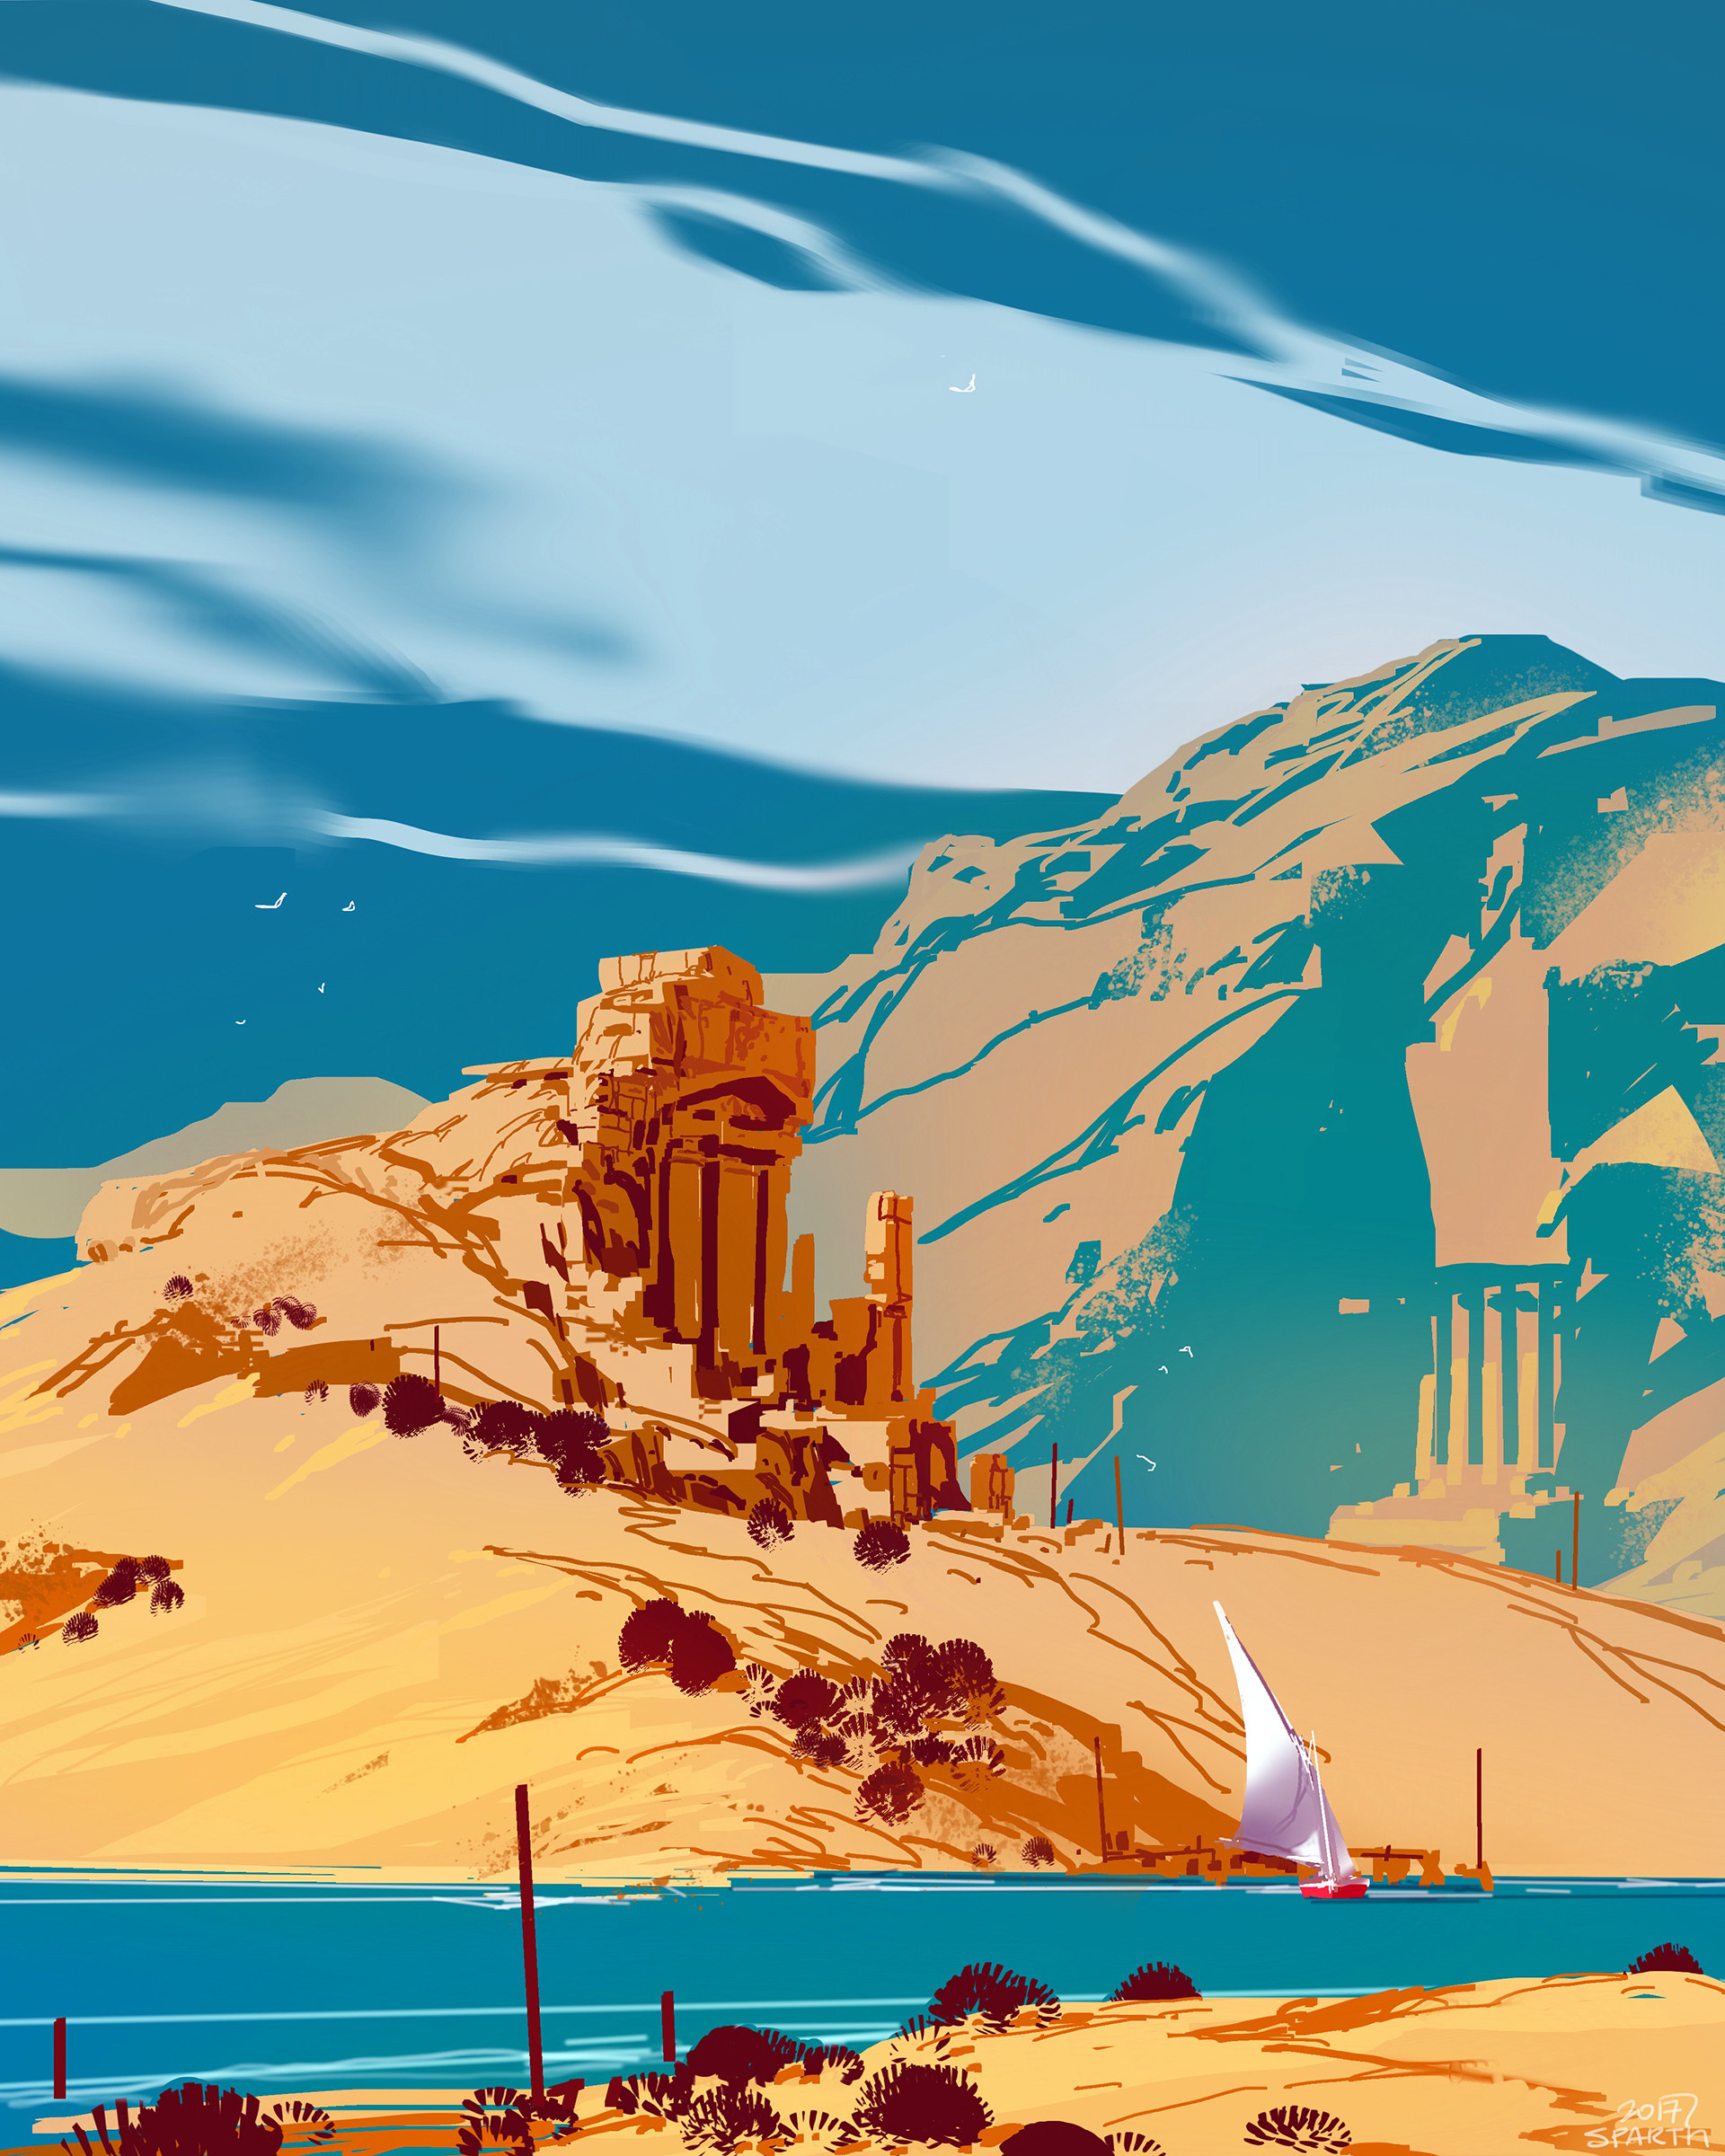 Sparth desert sparth with tweaks final small